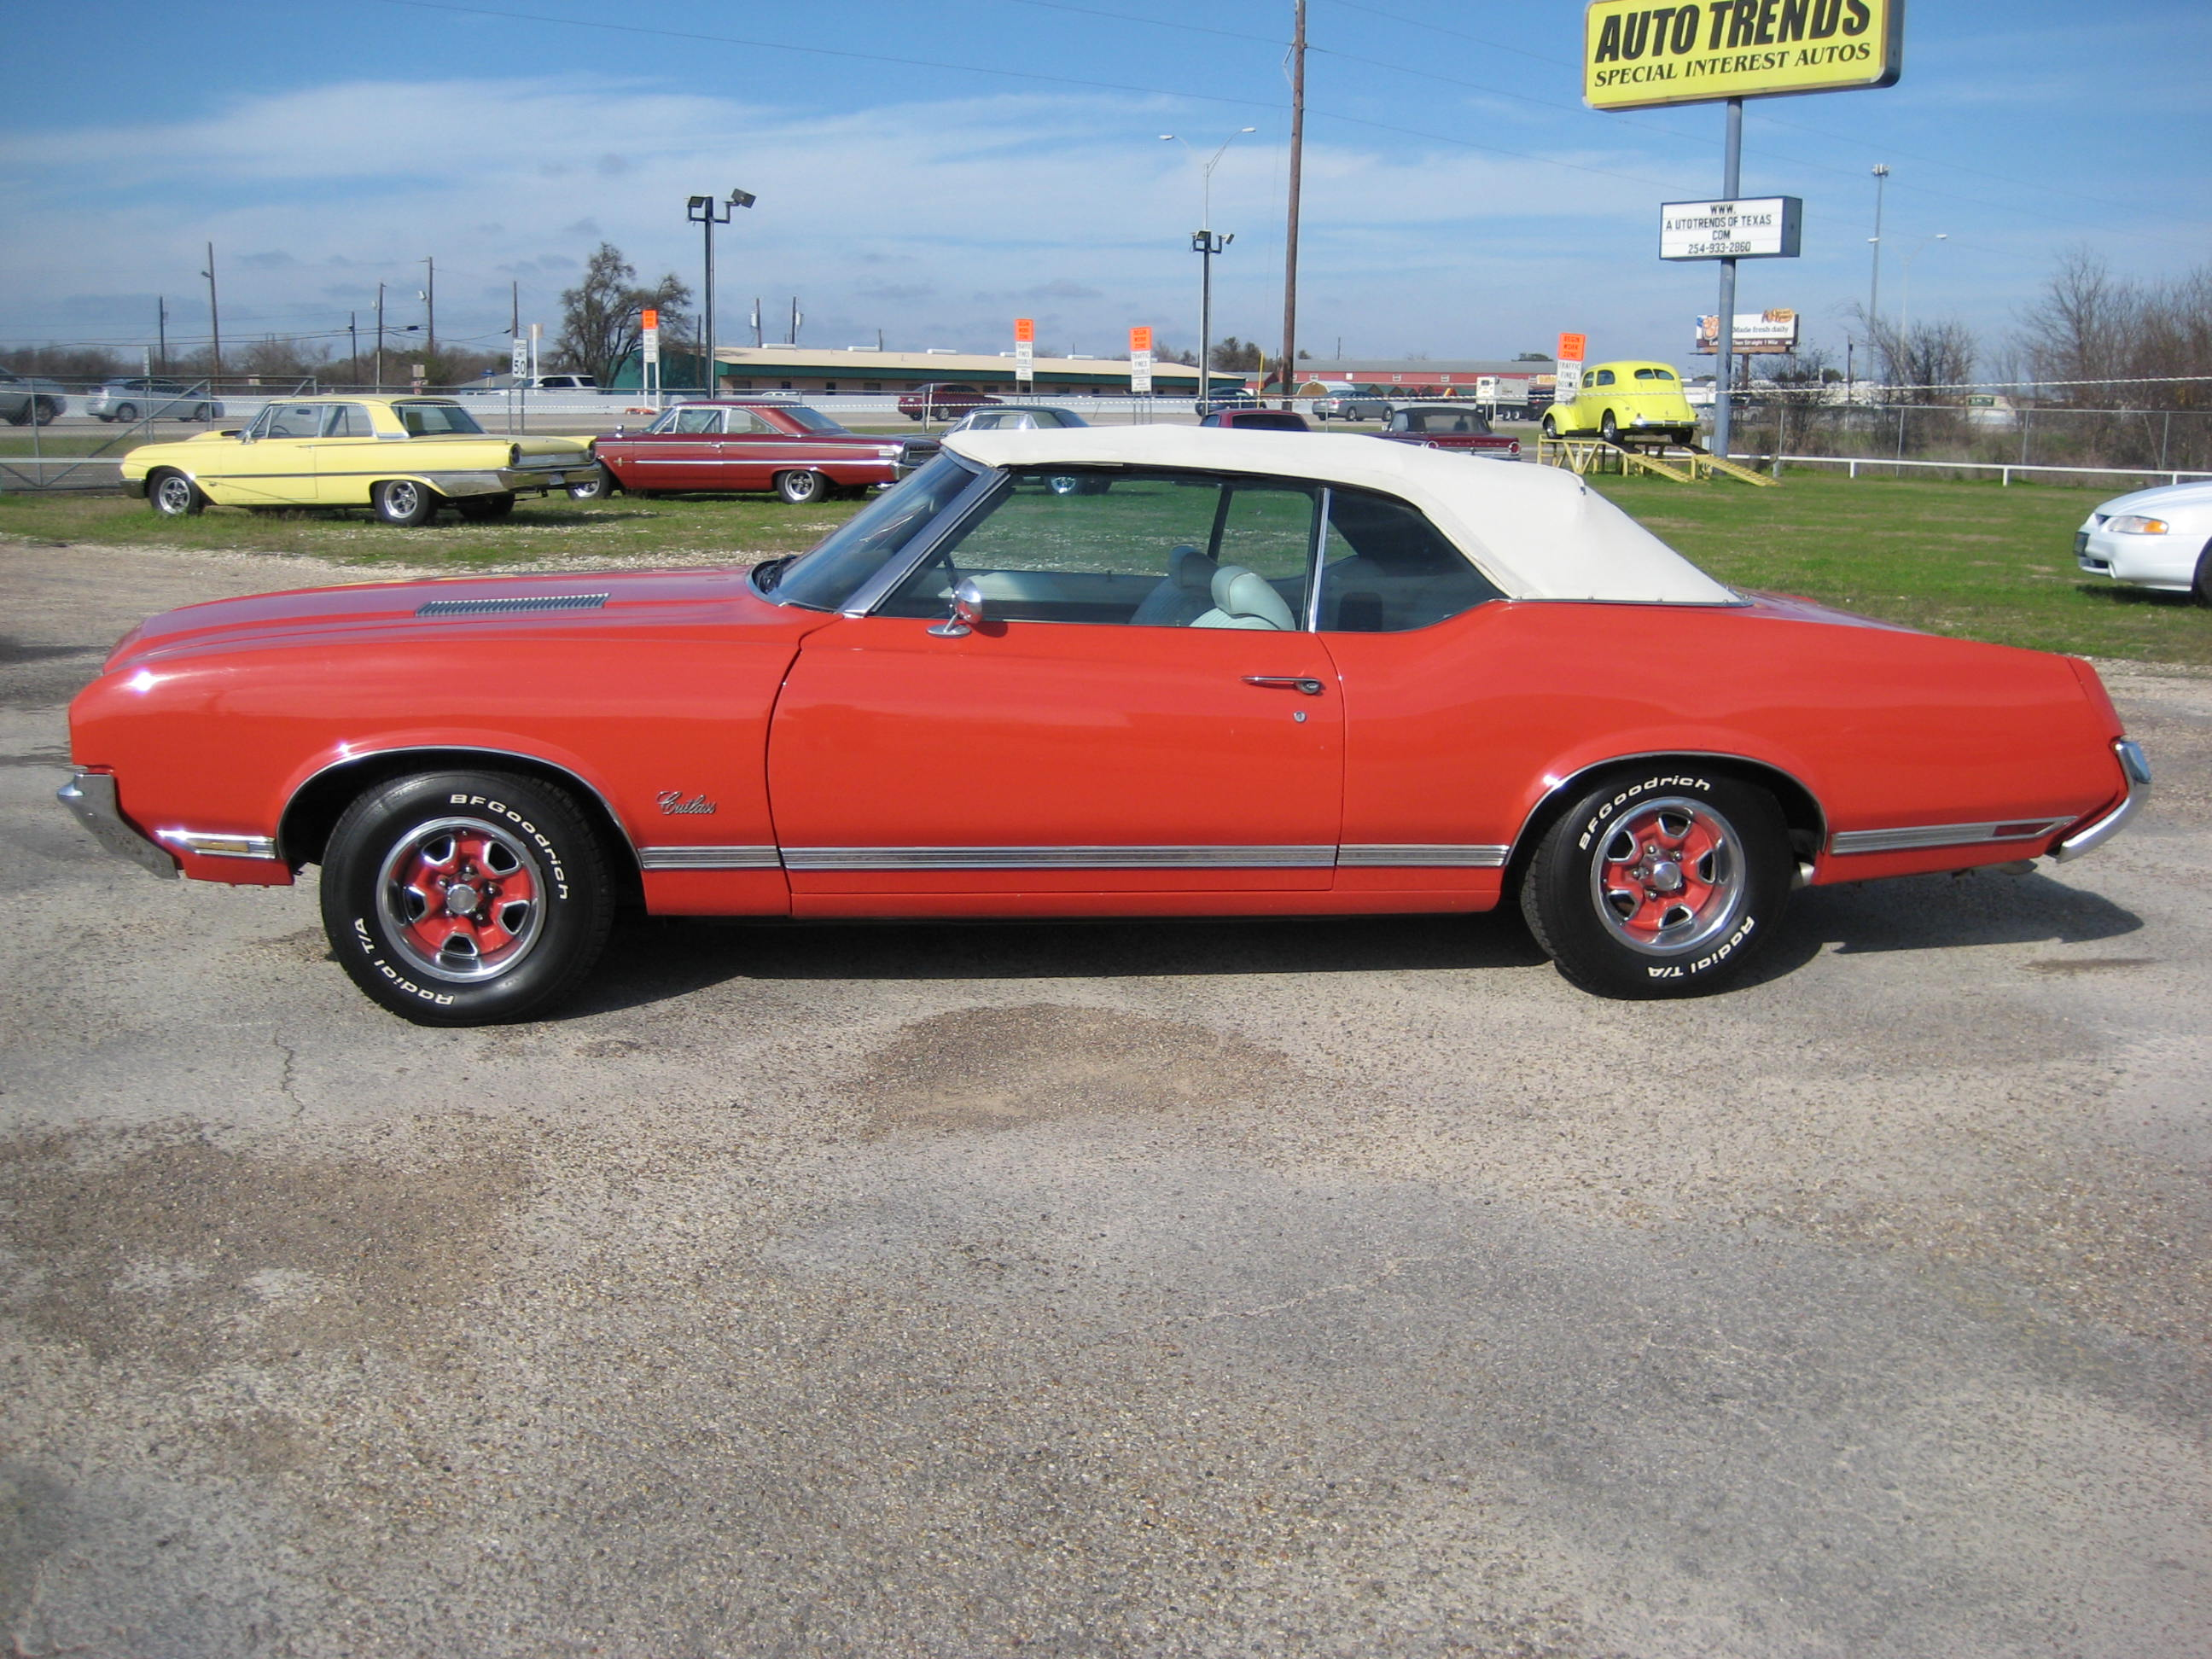 1971 Cutlass Convertible Autotrends